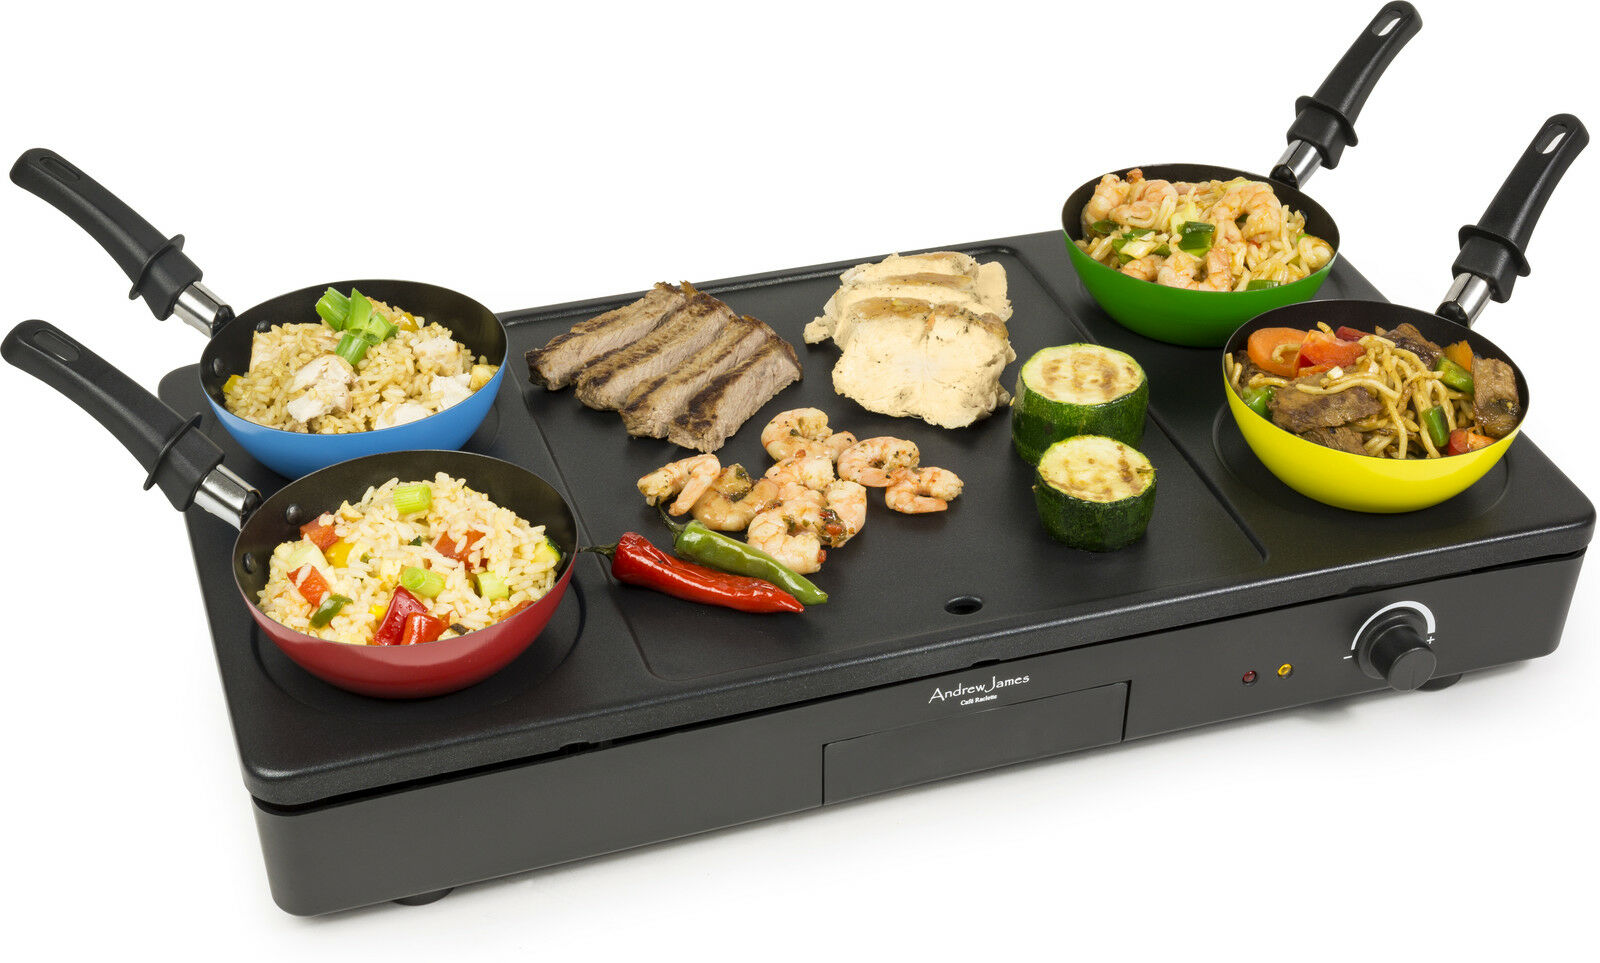 new andrew james party wok grill teppanyaki hot plate hob pancake crepe function ebay. Black Bedroom Furniture Sets. Home Design Ideas